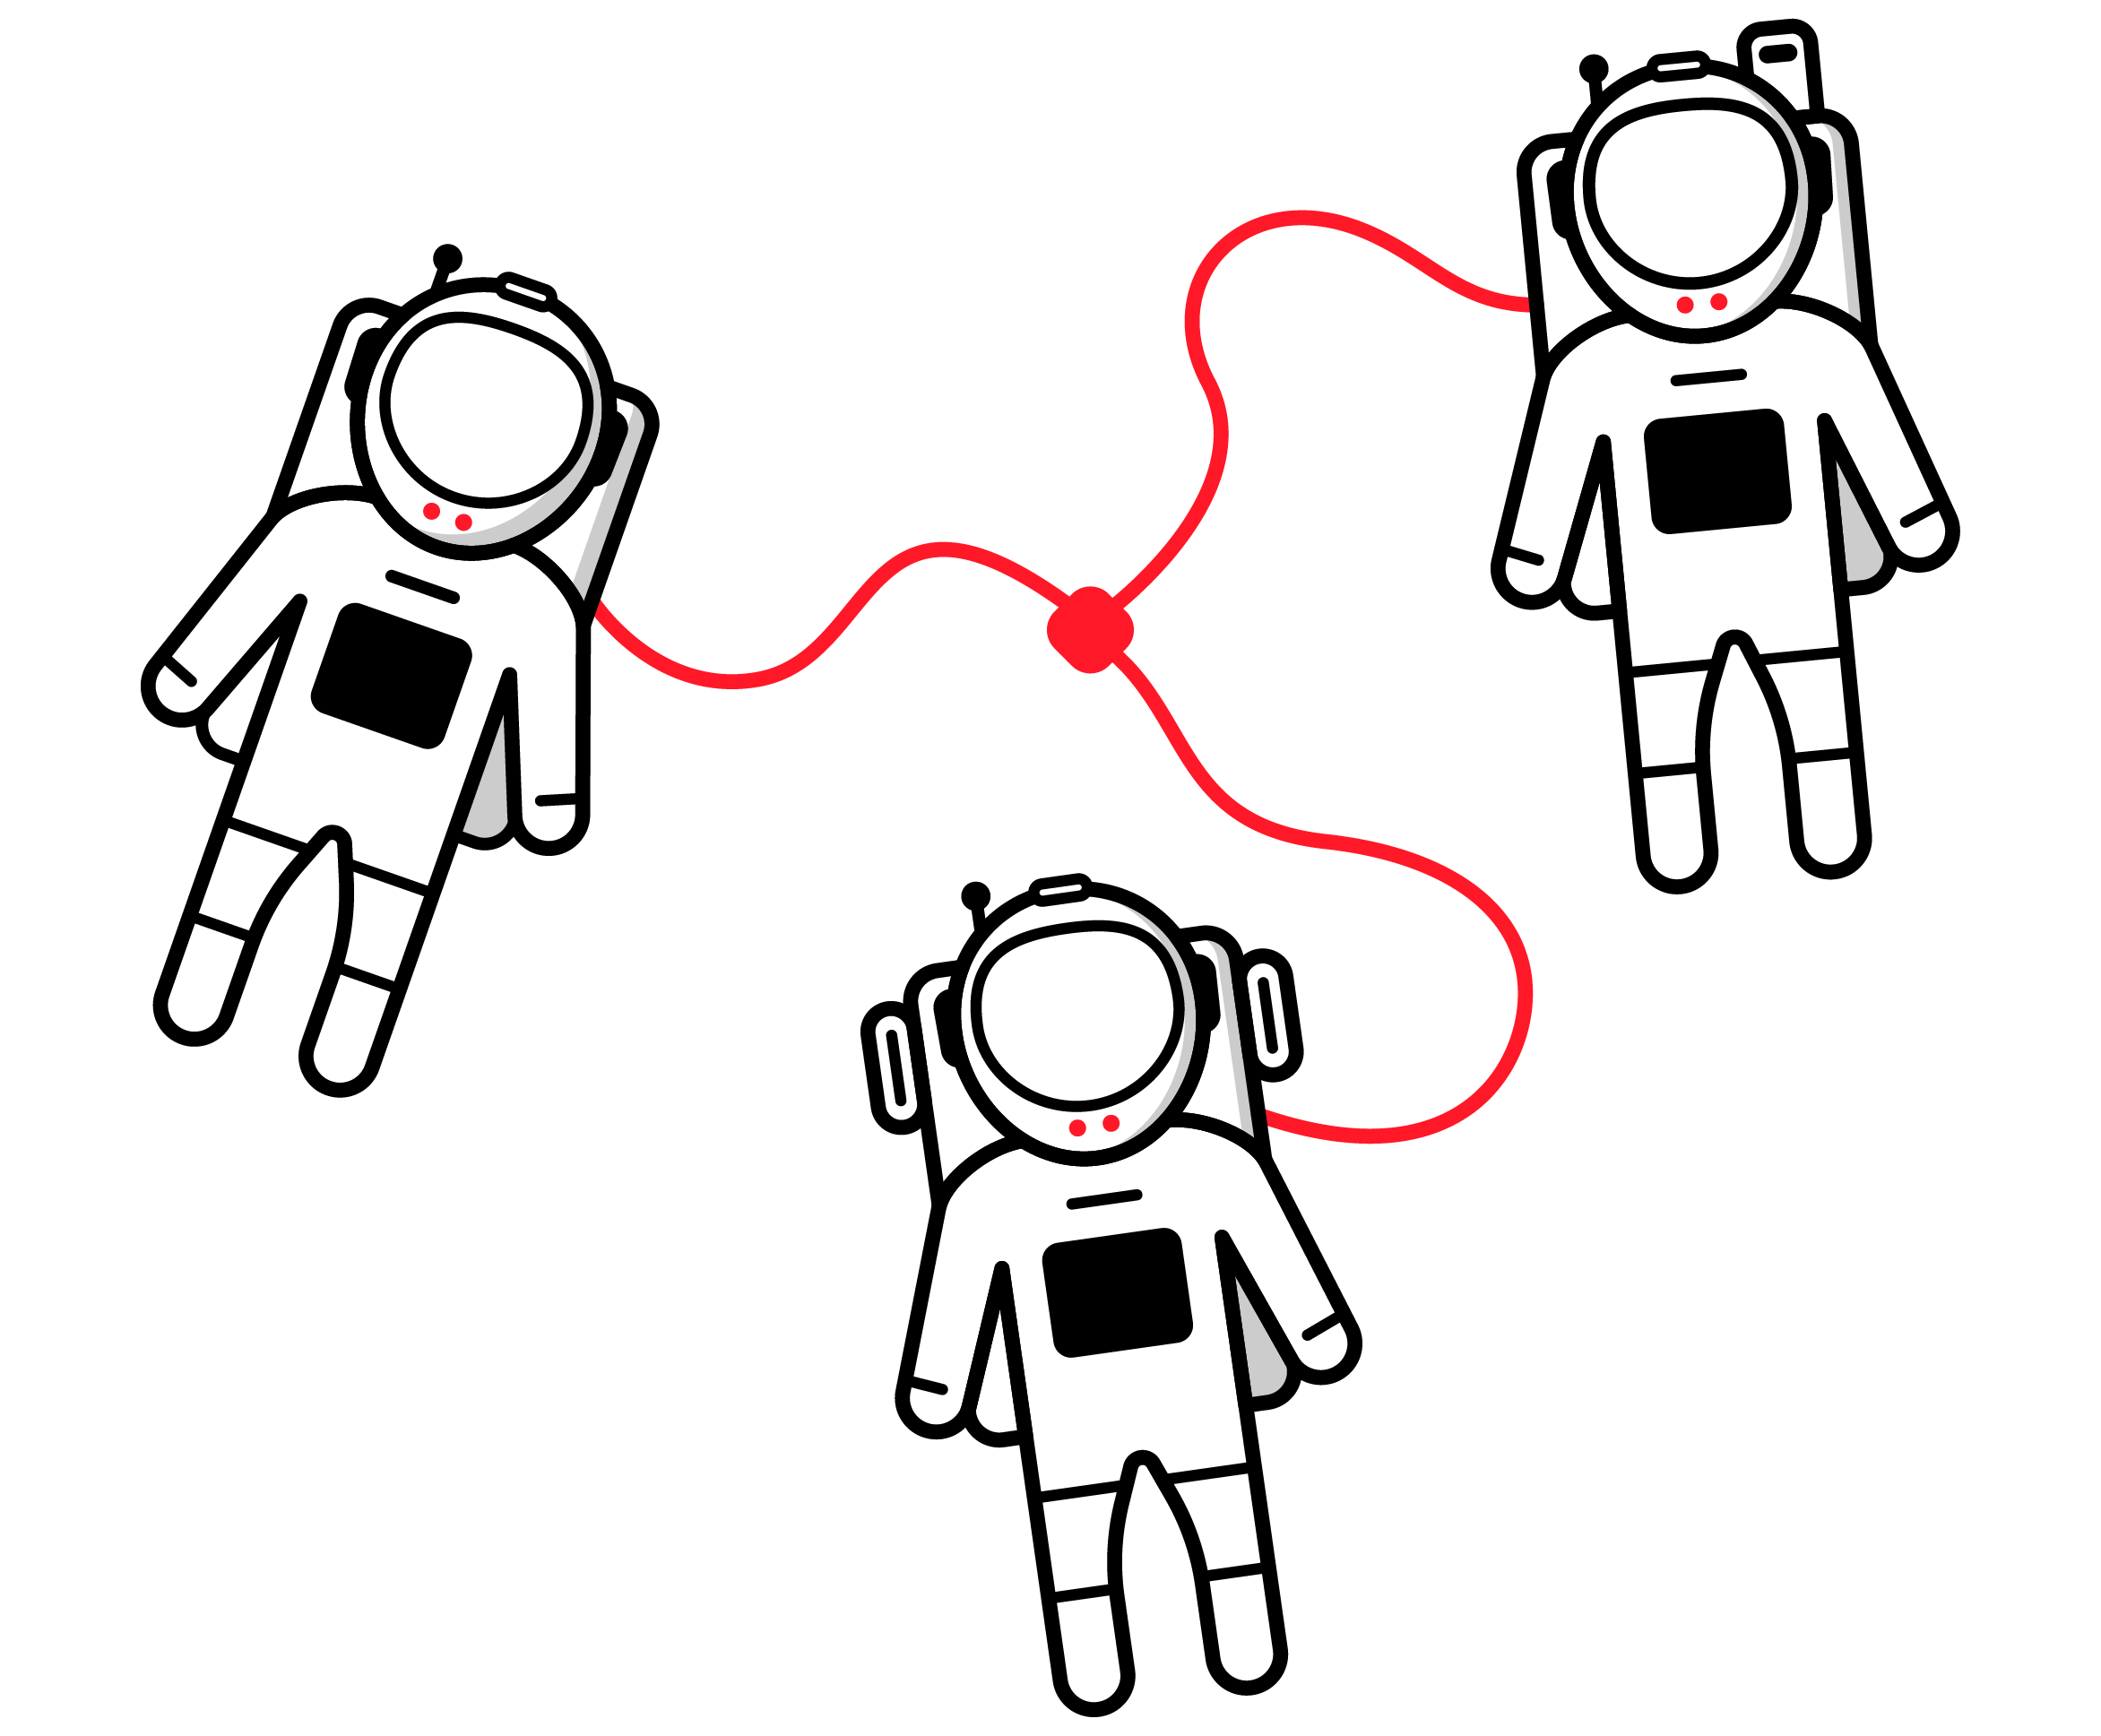 about-our-story-illustration_astronauts.png